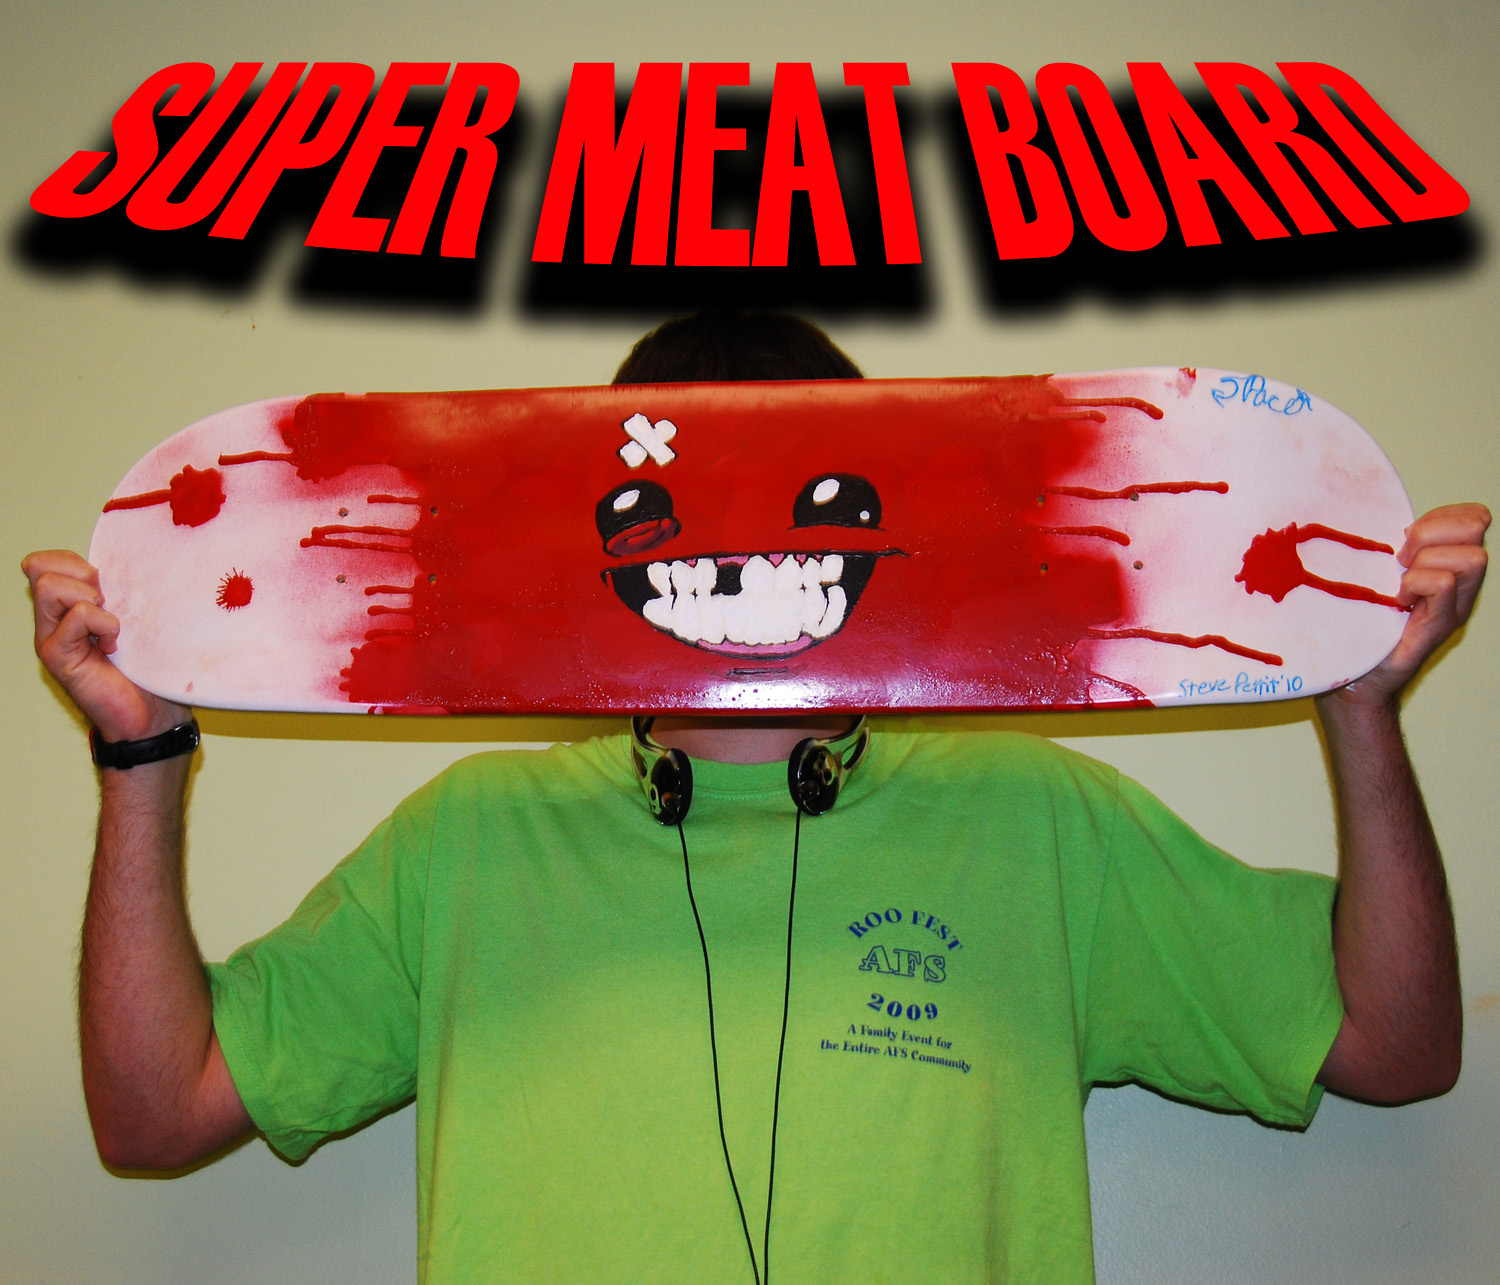 Super Meat Board